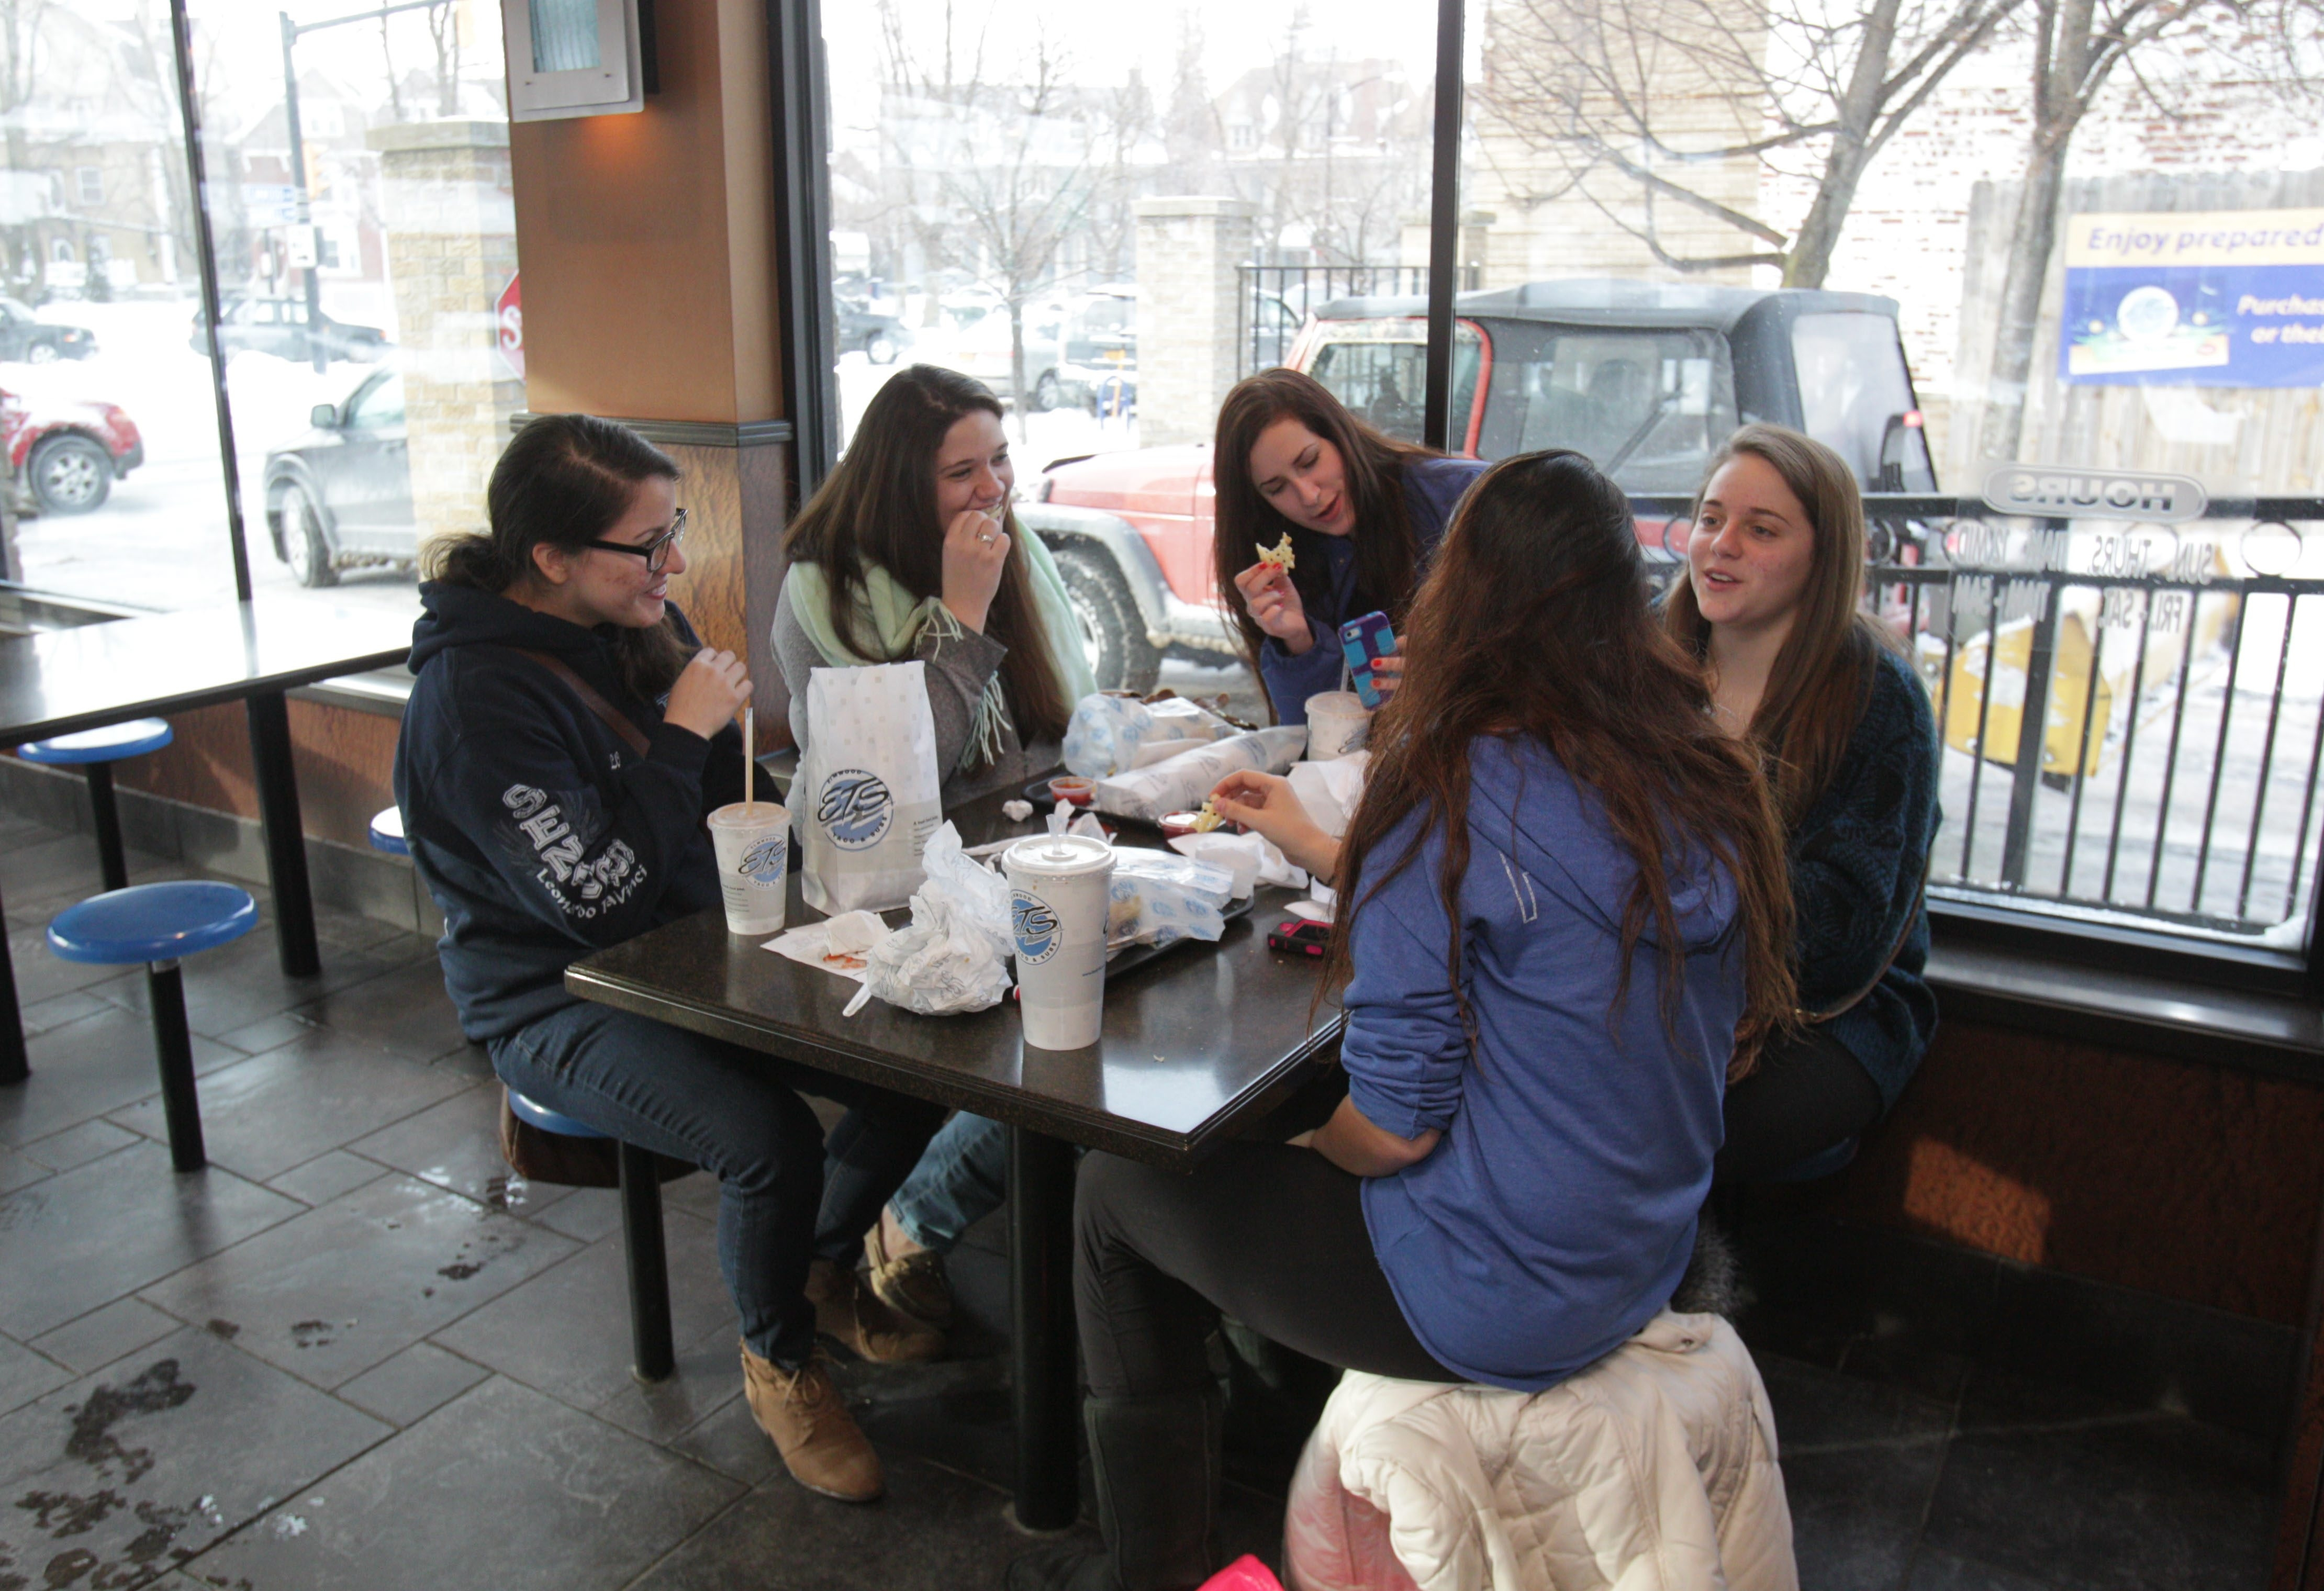 Area teens looking for something to do – or eat – often head to Hertel and Elmwood avenues. Here, friends from Leonardo DaVinci and City Honors high schools grabbed a bite to eat at Elmwood Taco & Subs. From left are Lindsay Olivieri, Tess Cullen, Leanna Gradolph, Leia LaBruna and Gabrielle Reh (back to camera).